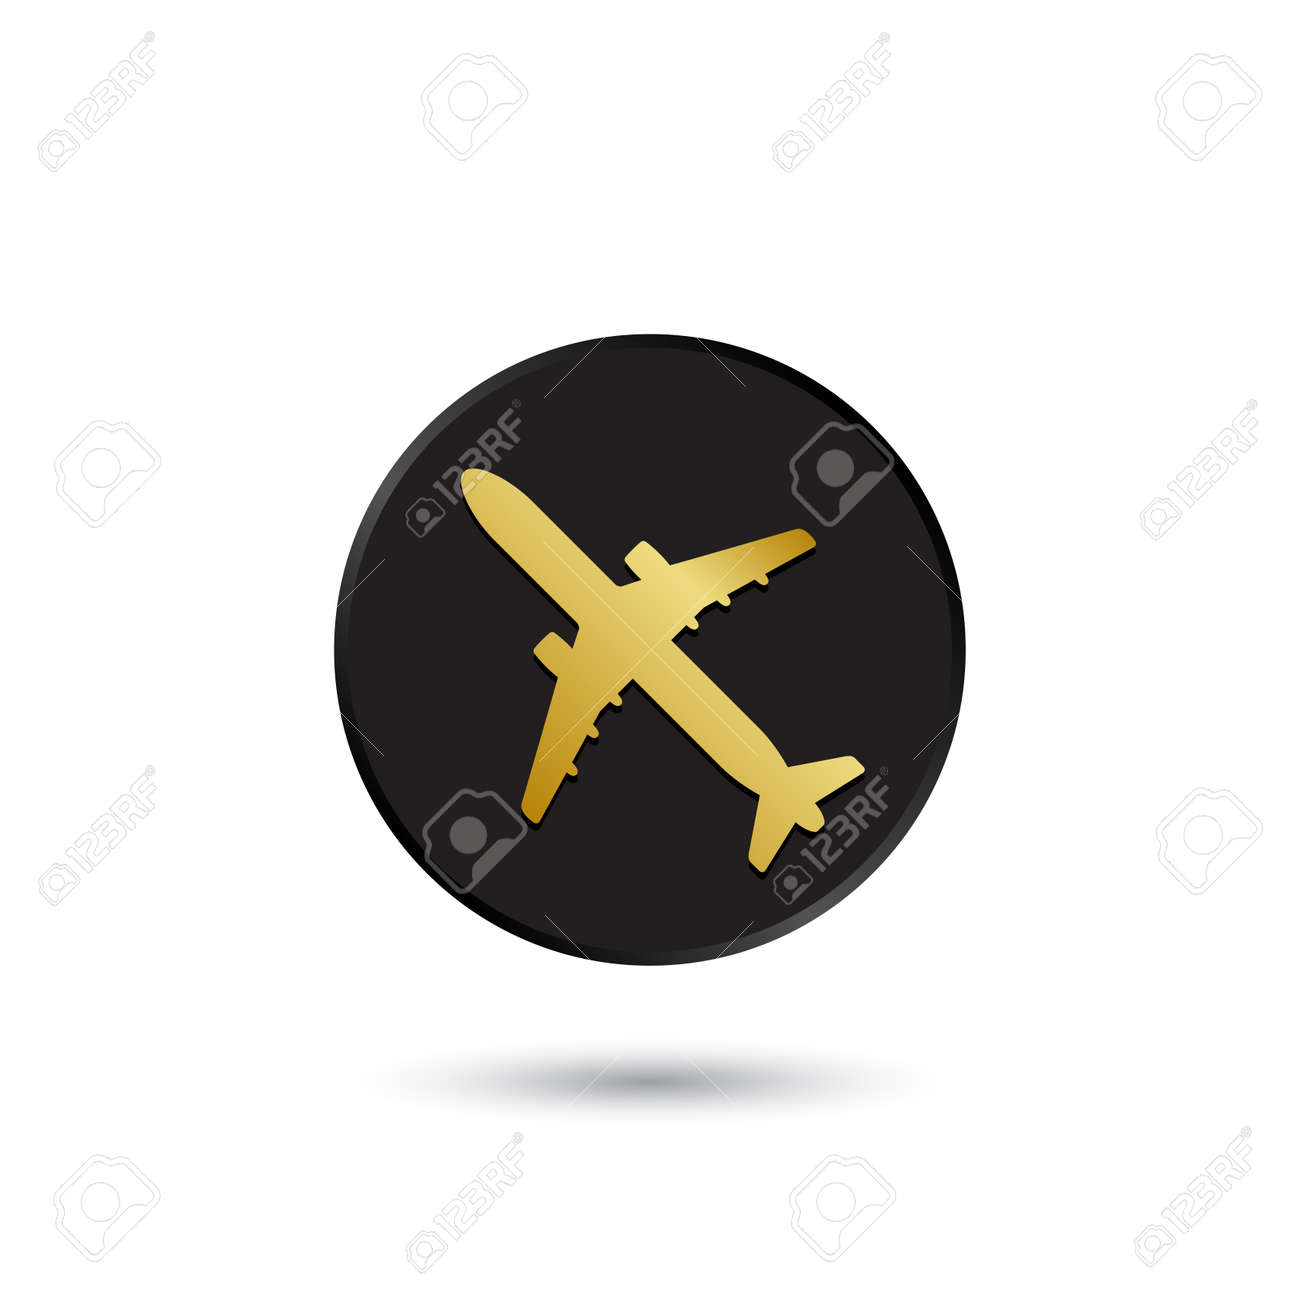 simple gold on black airplane icon logo royalty free cliparts